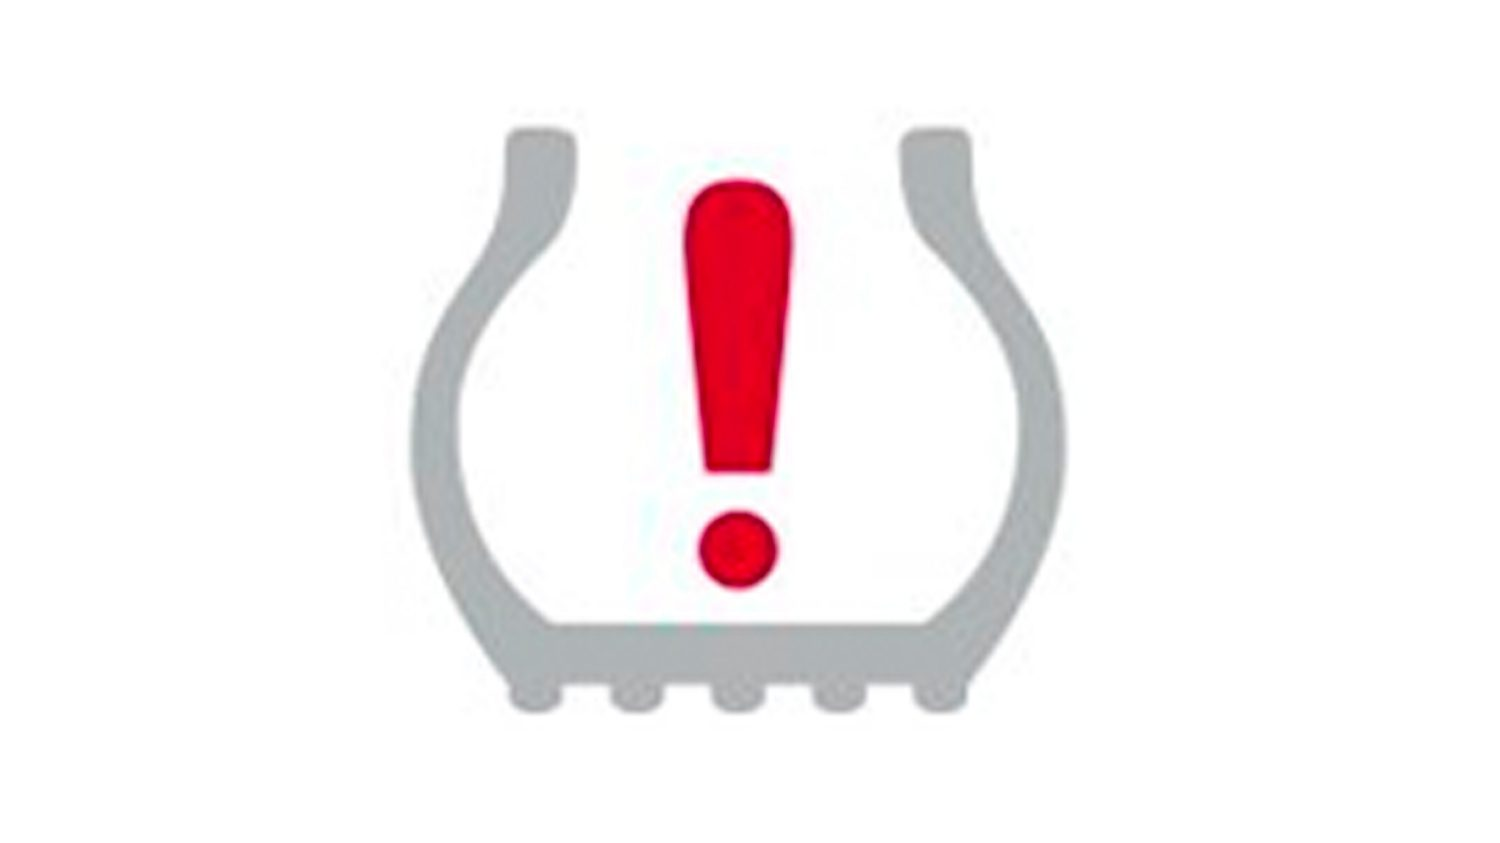 Nissan e-NV200 EVALIA TPMS pictogram